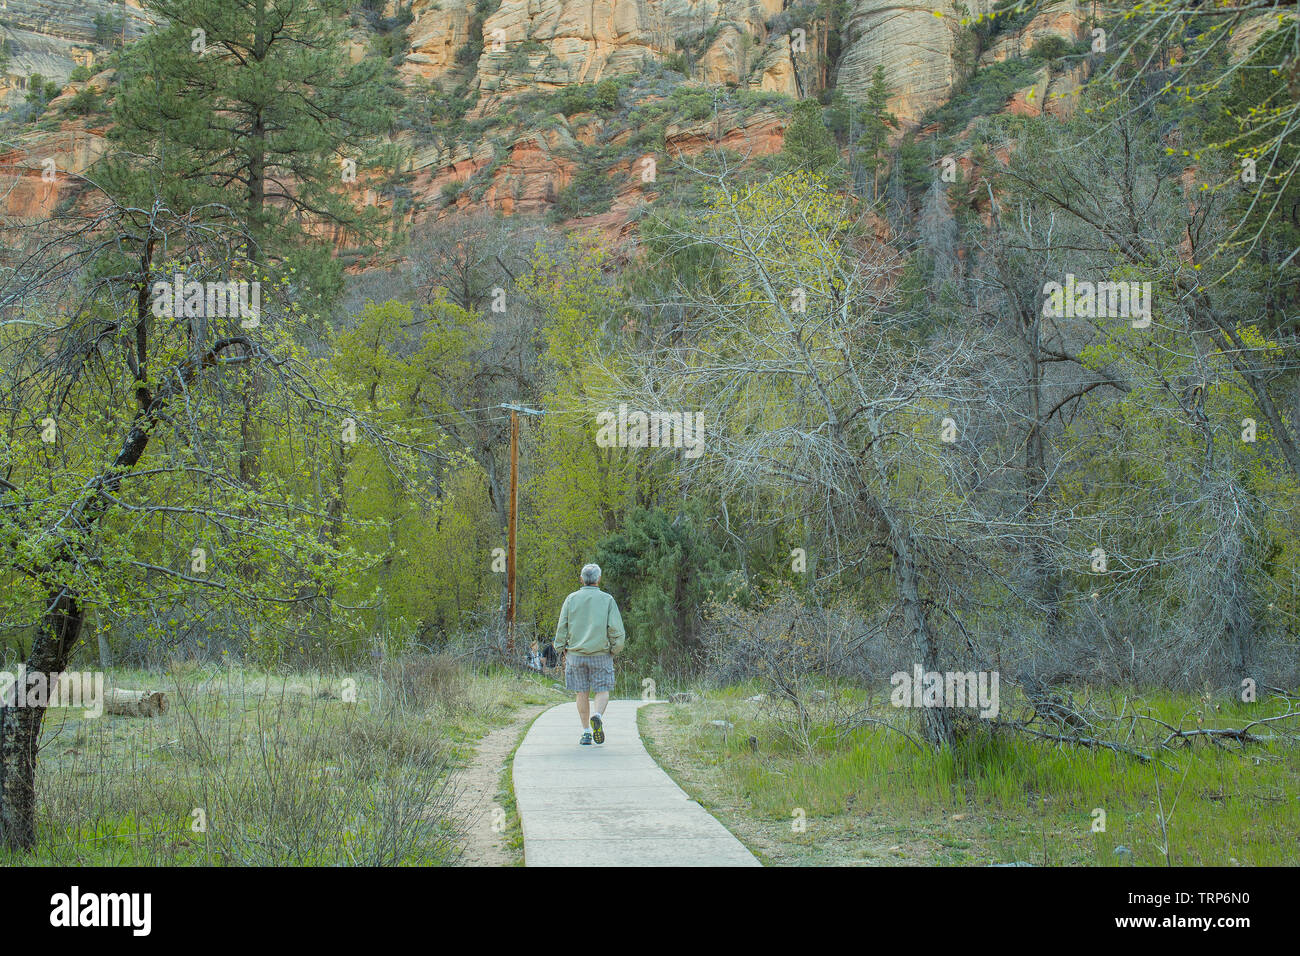 Located in North Sedona the trail encompasses 7.2 miles of trails, bridges, and water along Oak Creek up into the canyon. A photographers paradise. - Stock Image